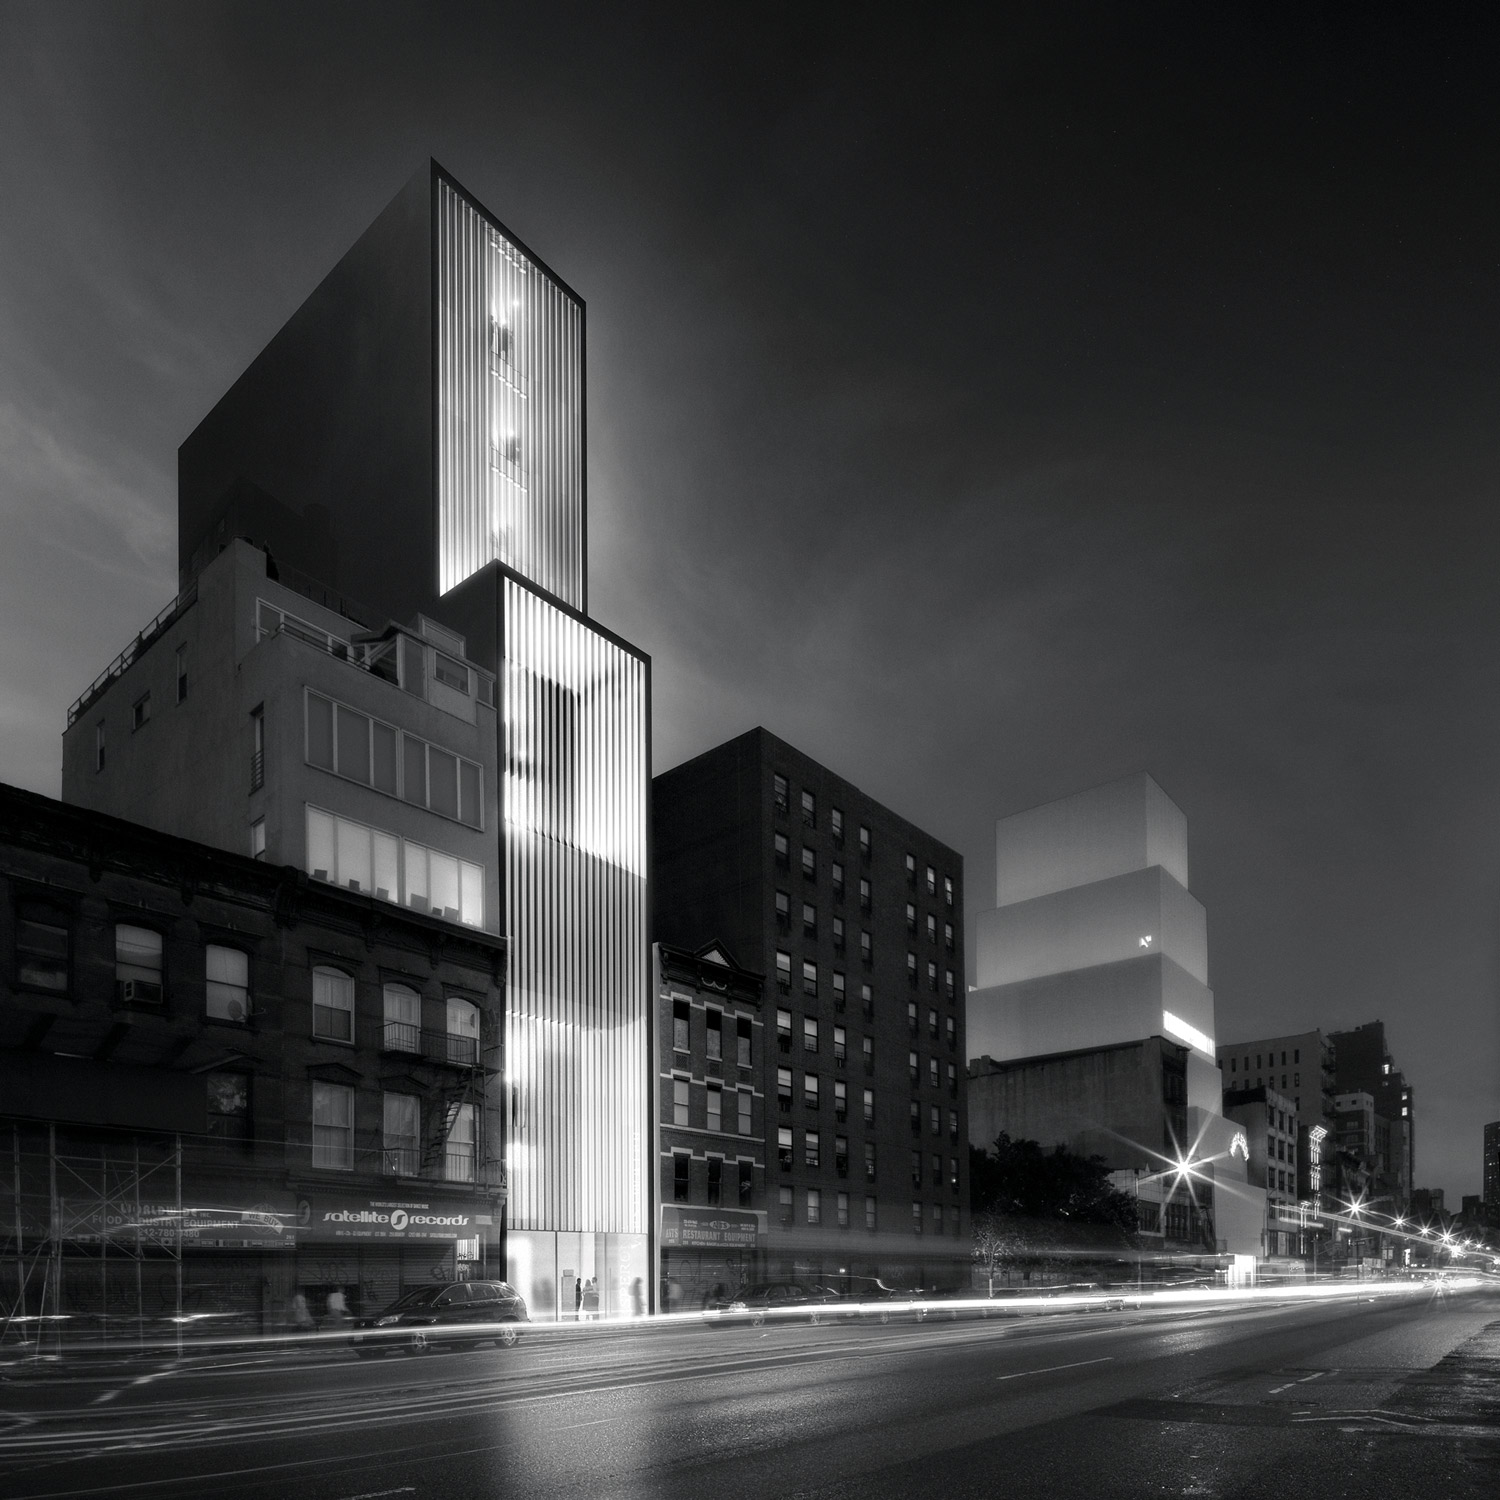 A rendering of the Sperone Westwater's new gallery space at the Bowery. Courtesy Sperone Westwater, New York.